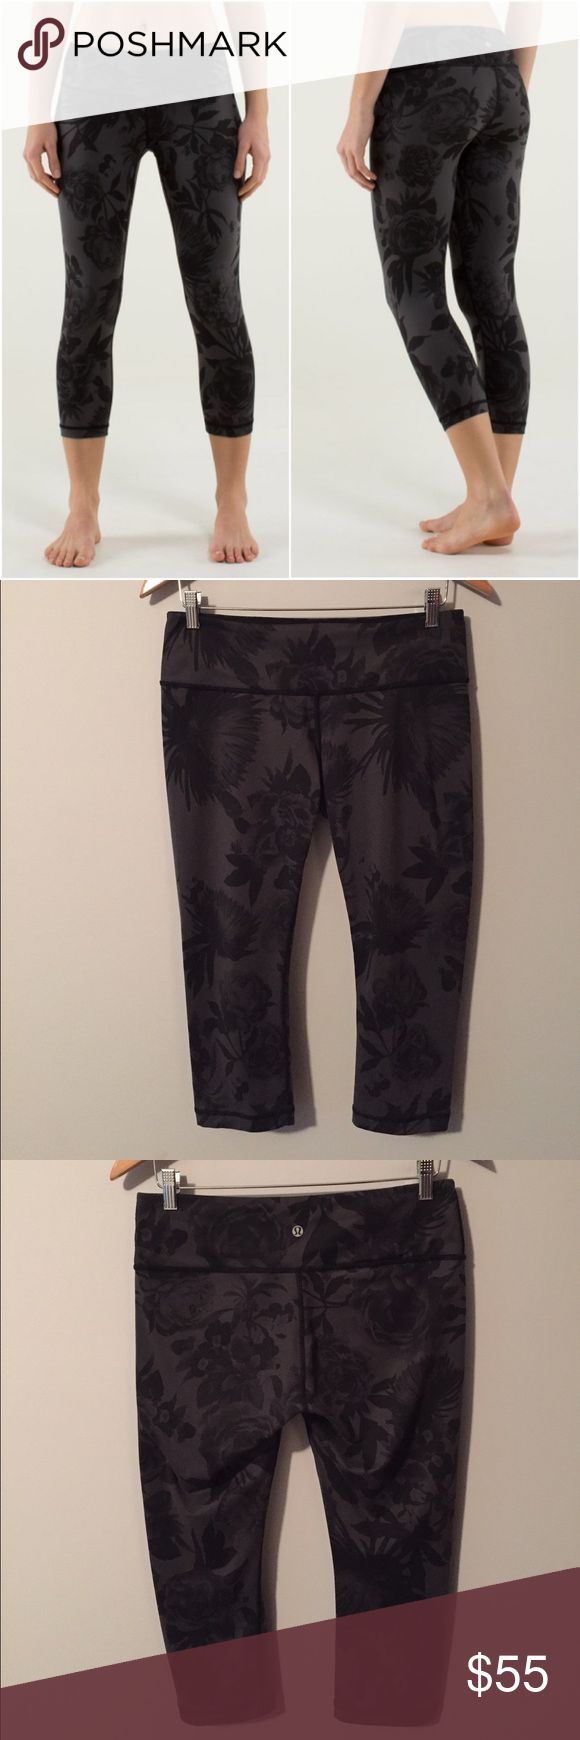 Lululemon wunder under crops Lululemon Wunder Under Crops in Brisk Bloom Black Soot/Black, size 10, gently worn and in excellent condition with no flaws(meaning no piling/seam damage/rips/holes/stains/odours/etc). Bundle to save 10% off ❤ lululemon athletica Pants Capris